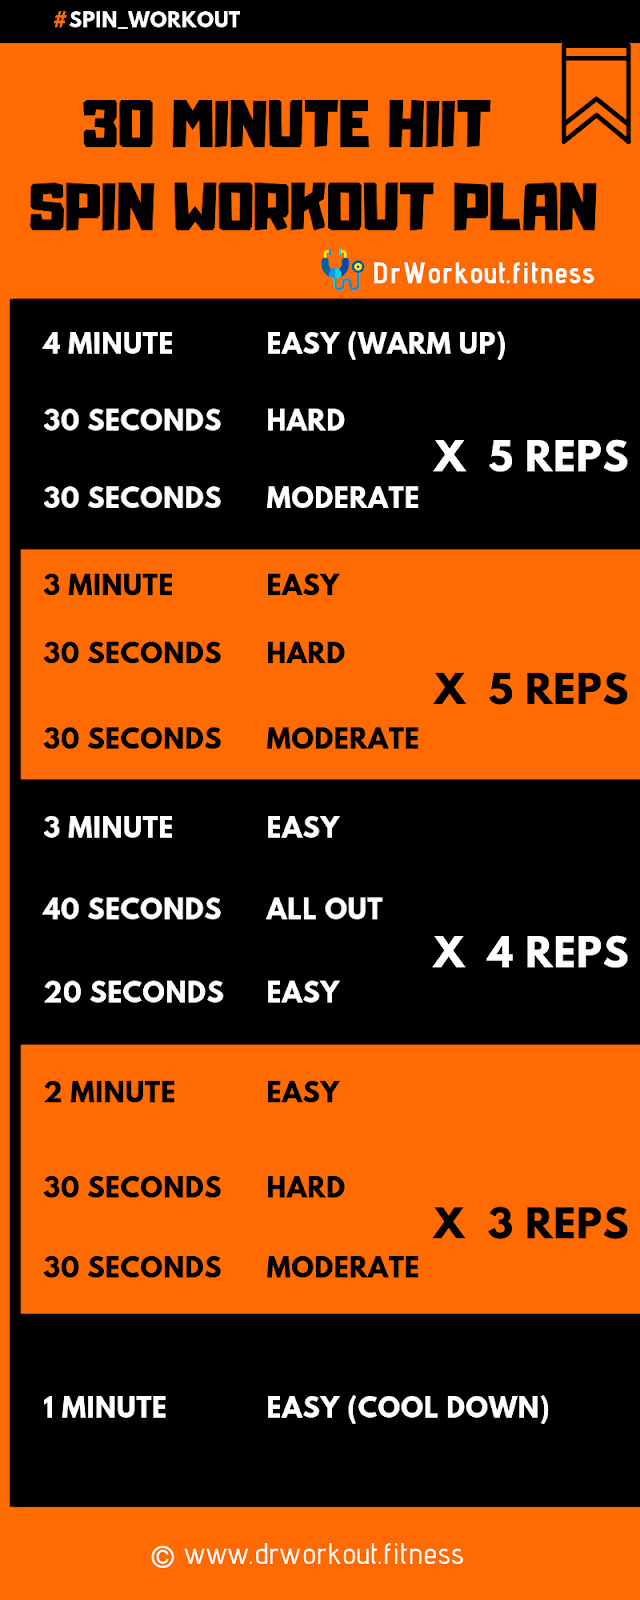 30 Minute HIIT Spin Workout Plan